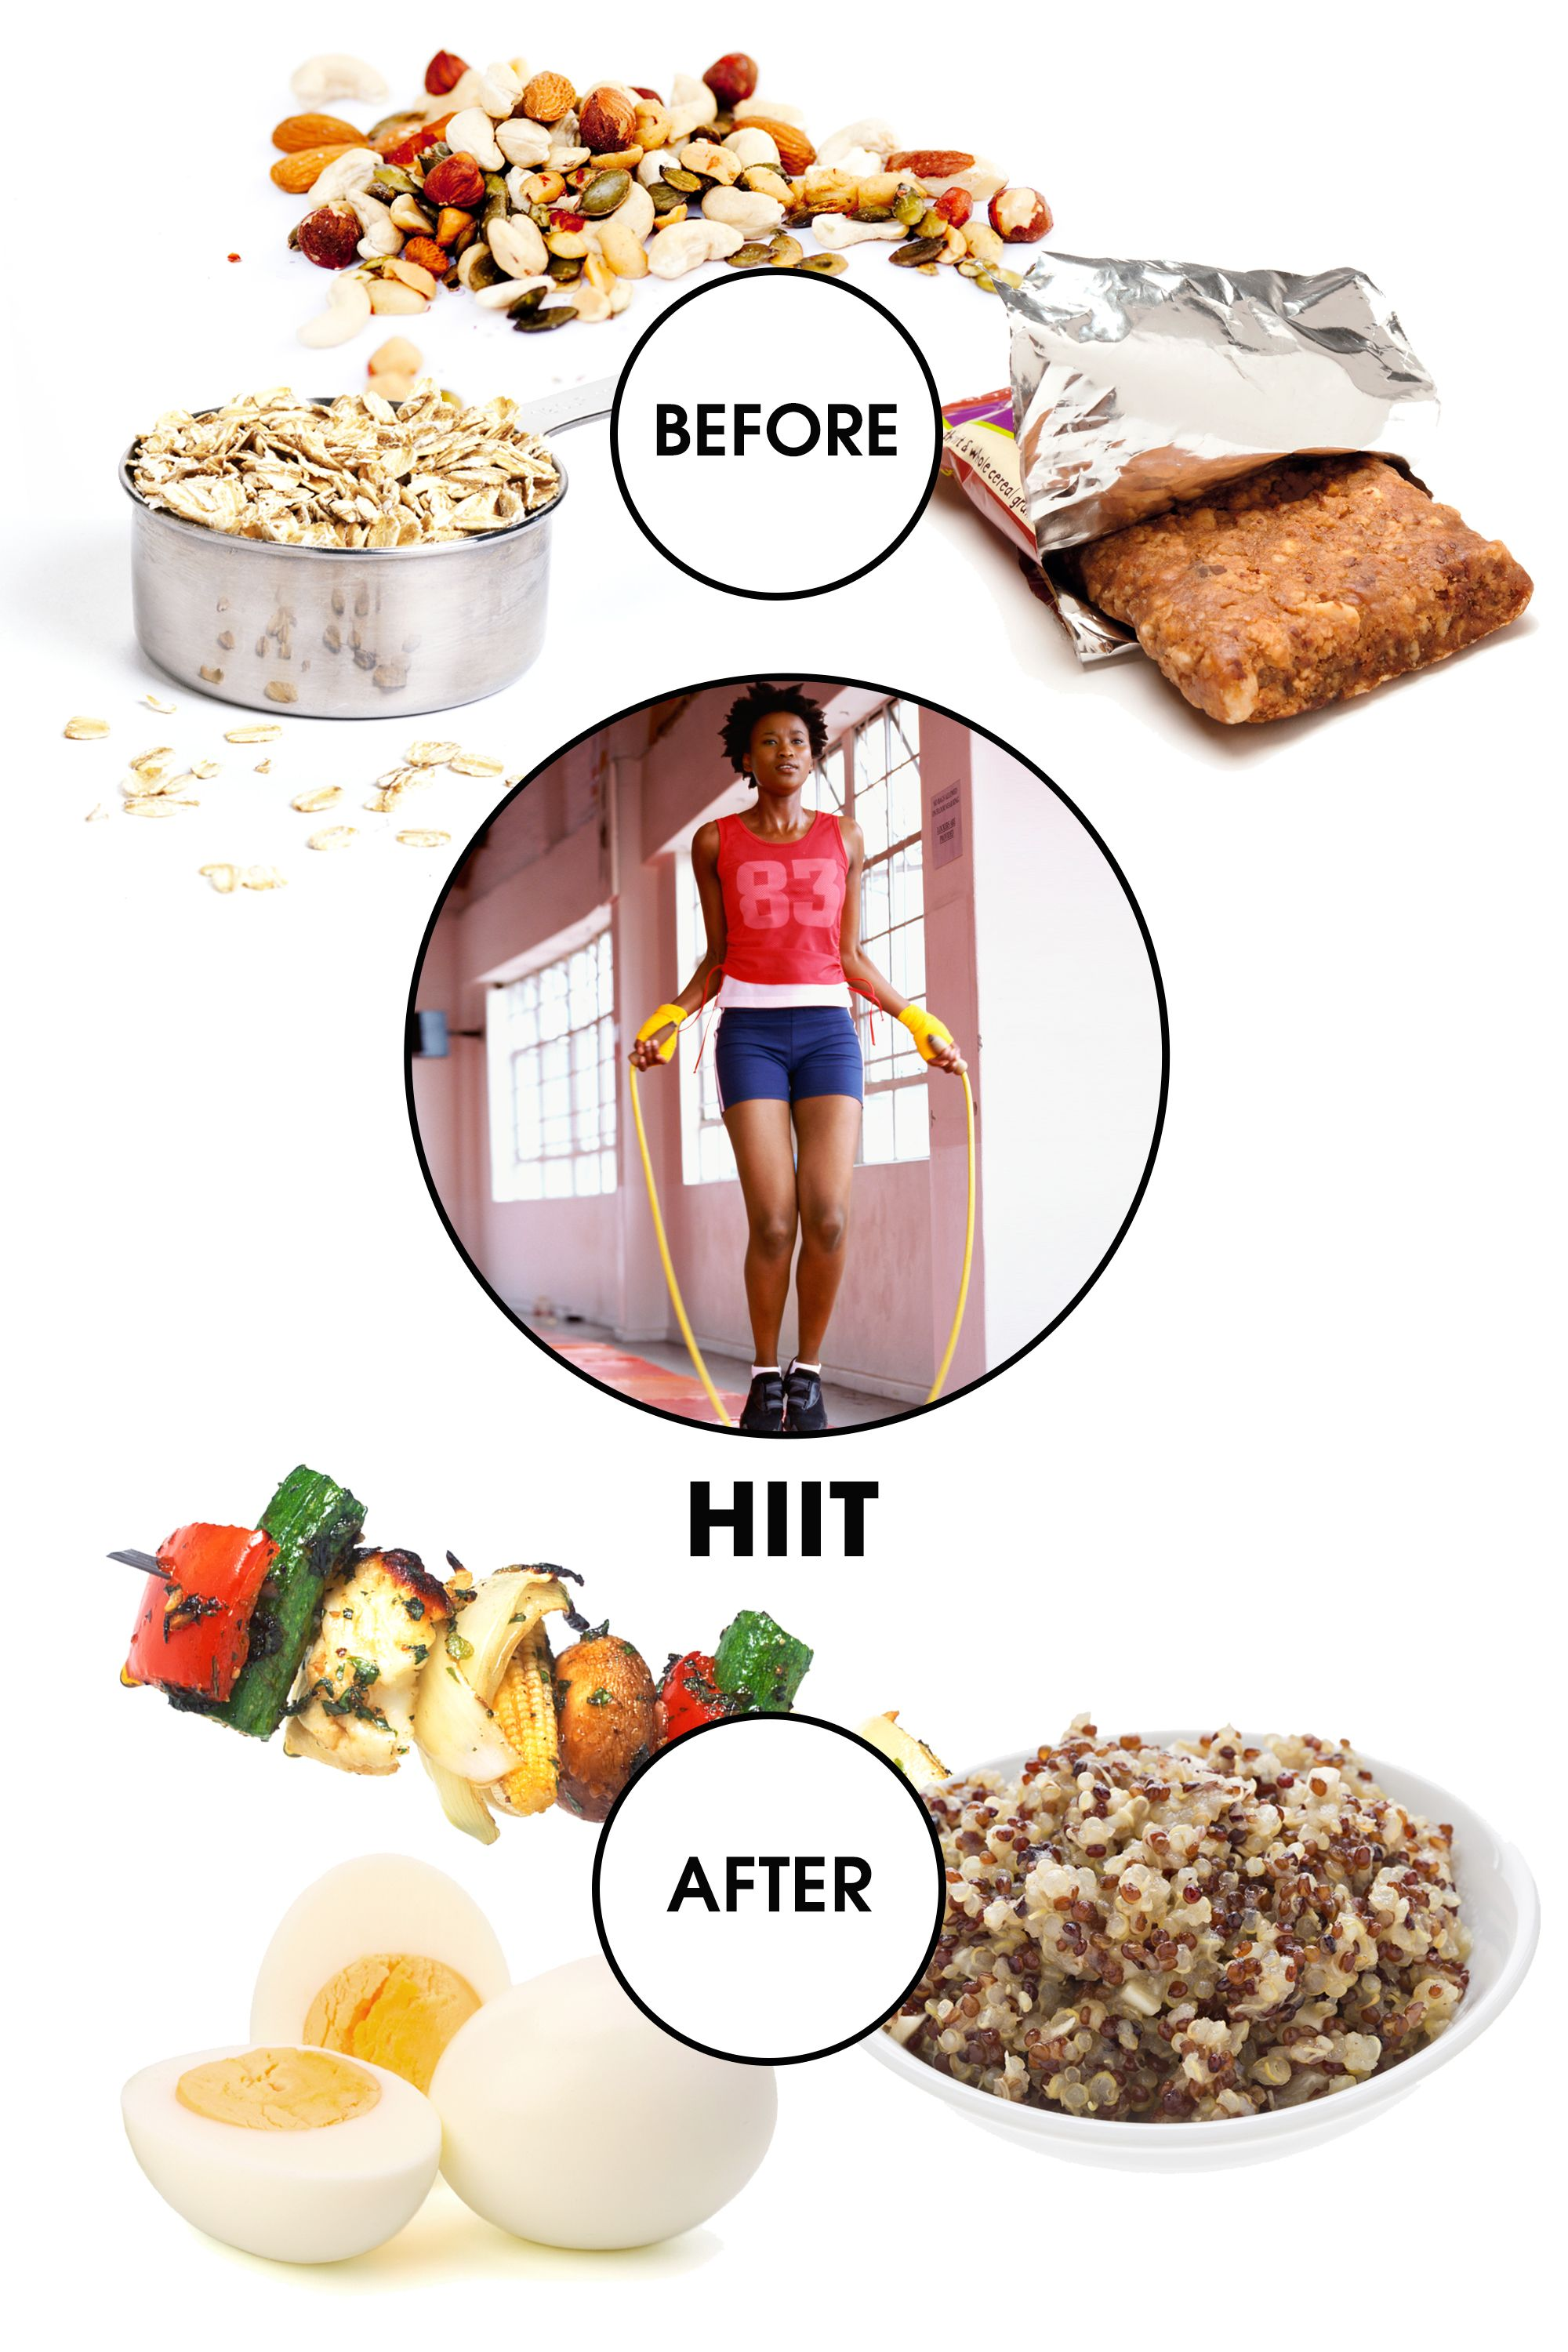 "<strong>Before: </strong>Consider the word ""intense"" in High-Intensity Interval Training—it's quick, but those few minutes really put your body through the ringer. It means that fueling up with efficient energy beforehand is crucial. ""Nuts and seeds are high in fiber and cover all your macronutrient bases, such as carbs, proteins, and fat, to keep you satisfied and energized,"" says Snyder. ""You can also try about ½ cup of oatmeal, which will give you a quick boost of energy for a great workout."" If you're strapped for time or reserving your energy for your HIIT session, a minimally processed fruit and nut bar is a decent alternative. ""The point is getting accessible carbohydrates as a pre-workout booster,"" says Stanley. 